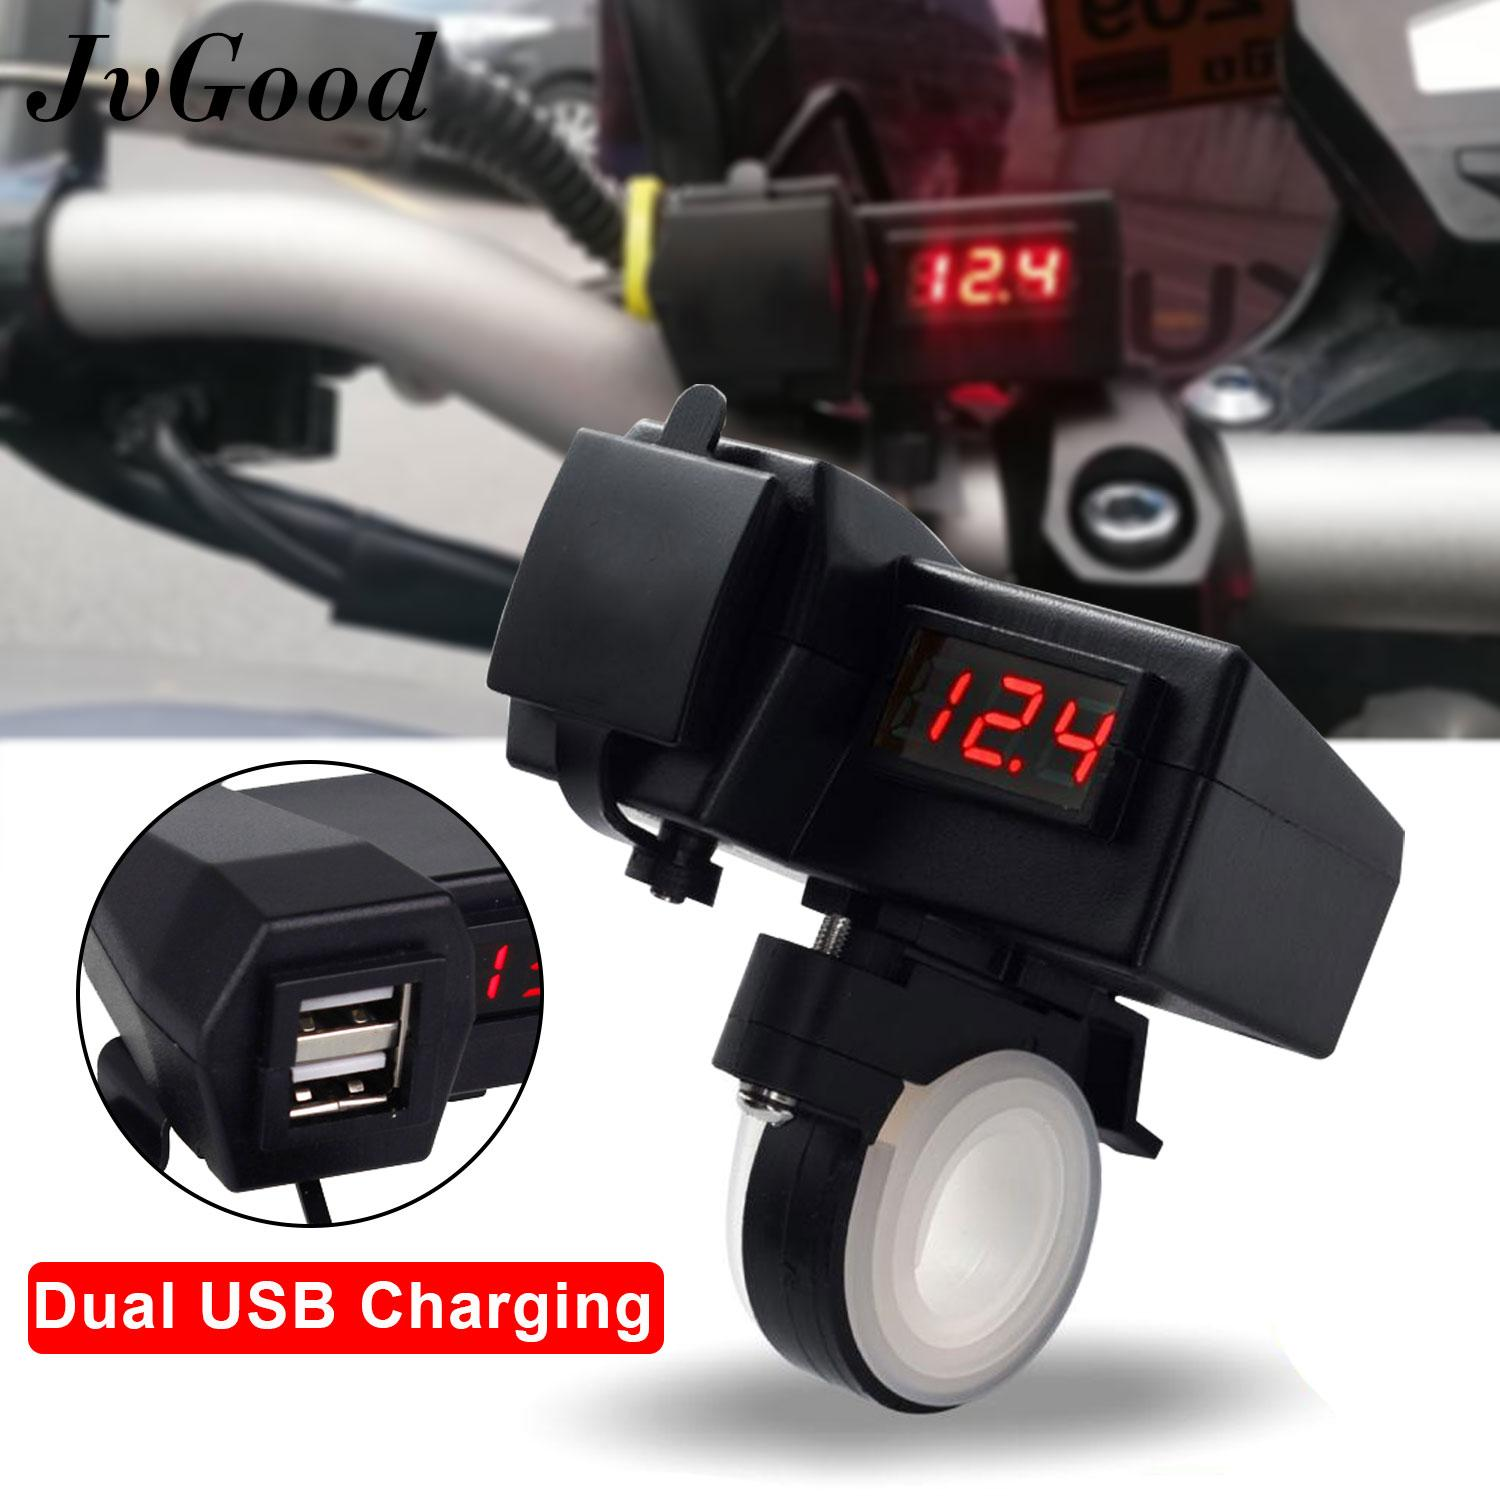 Jvgood Motorcycle Usb Charger With Voltmeter Voltage Meter/switch Motorcycle Gps Cell Phone Power Socket Charger Motorcycle Mobile Phone Power Supply Charger Port Socket Dual Usb By Jvgood.